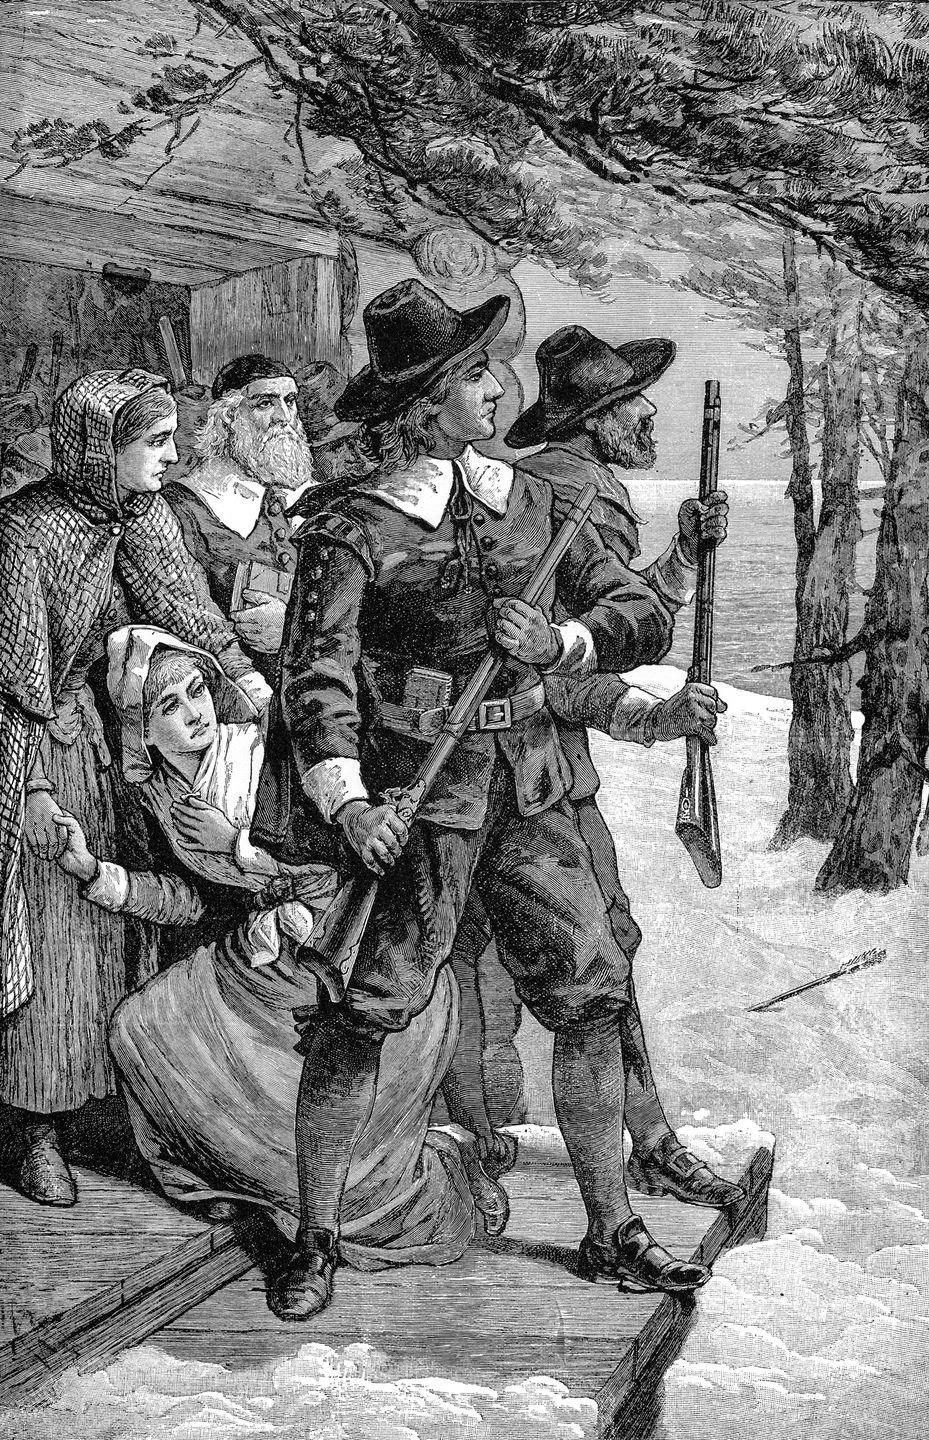 "<p>By the time the Puritans settled in Boston, celebrating Christmas had been outlawed. From 1659–1681, anyone caught making merry would face a fine for celebrating. After the Revolutionary War, the day was so unimportant that Congress even held their first session on December 25, 1789. Christmas wasn't proclaimed a <a href=""http://www.senate.gov/reference/resources/pdf/Federal_Holidays.pdf"" rel=""nofollow noopener"" target=""_blank"" data-ylk=""slk:federal holiday"" class=""link rapid-noclick-resp"">federal holiday</a> for almost another century, proving that the Grinch's notorious hatred of the holiday was alive and well long before he was.</p>"